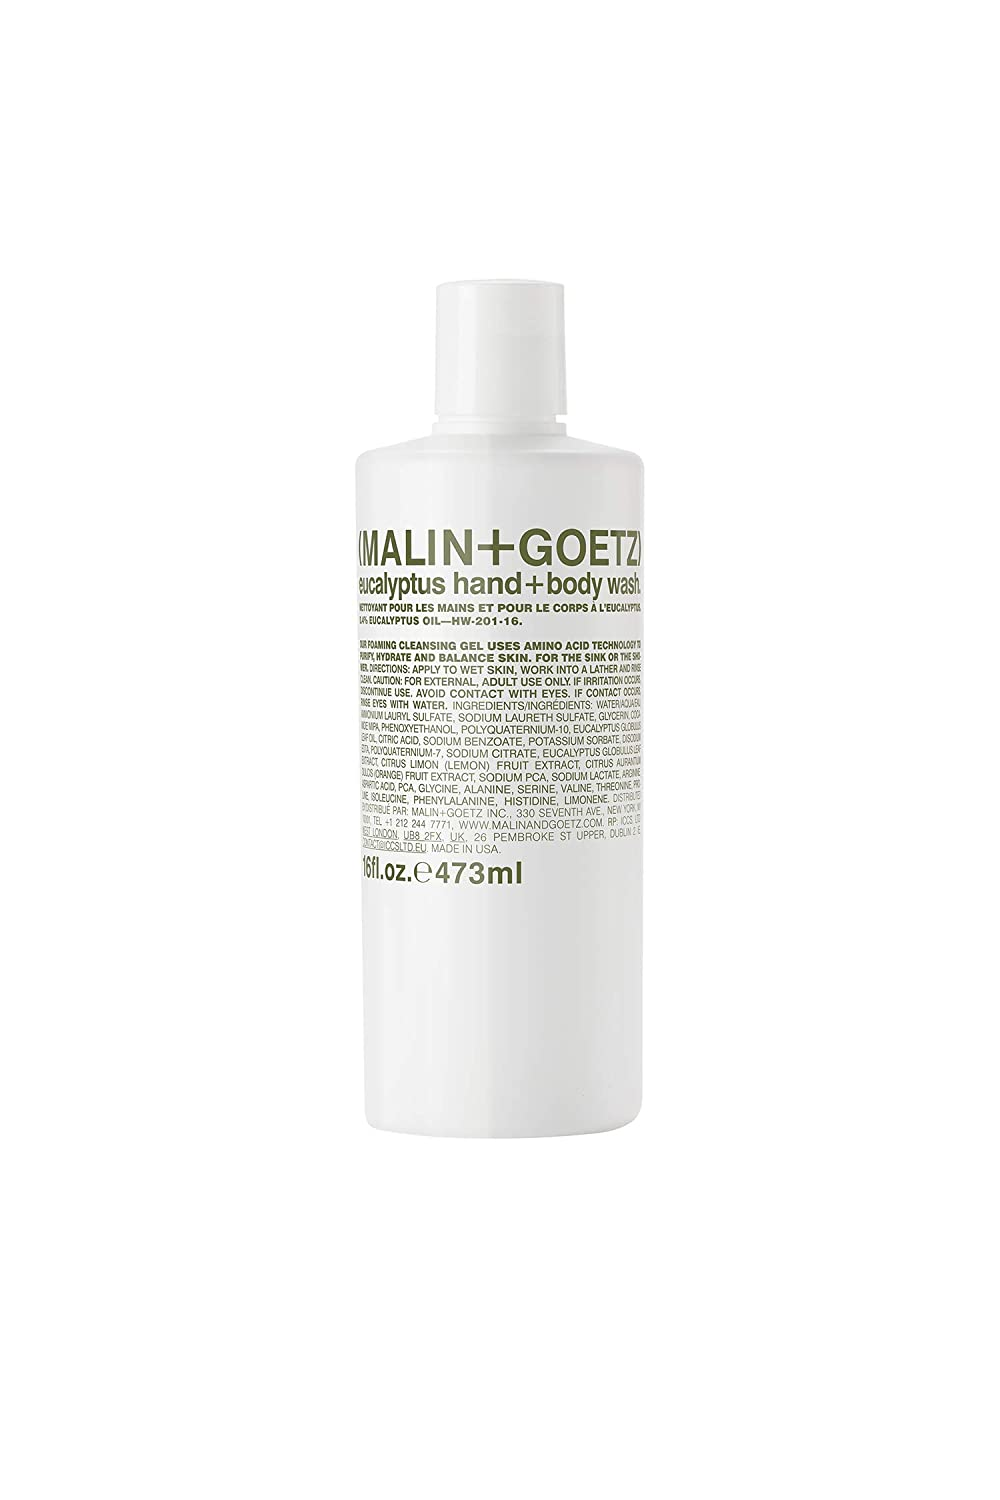 Malin + Goetz Rapid rise Eucalyptus Hand Body Wash — Max 70% OFF purifying cleansing